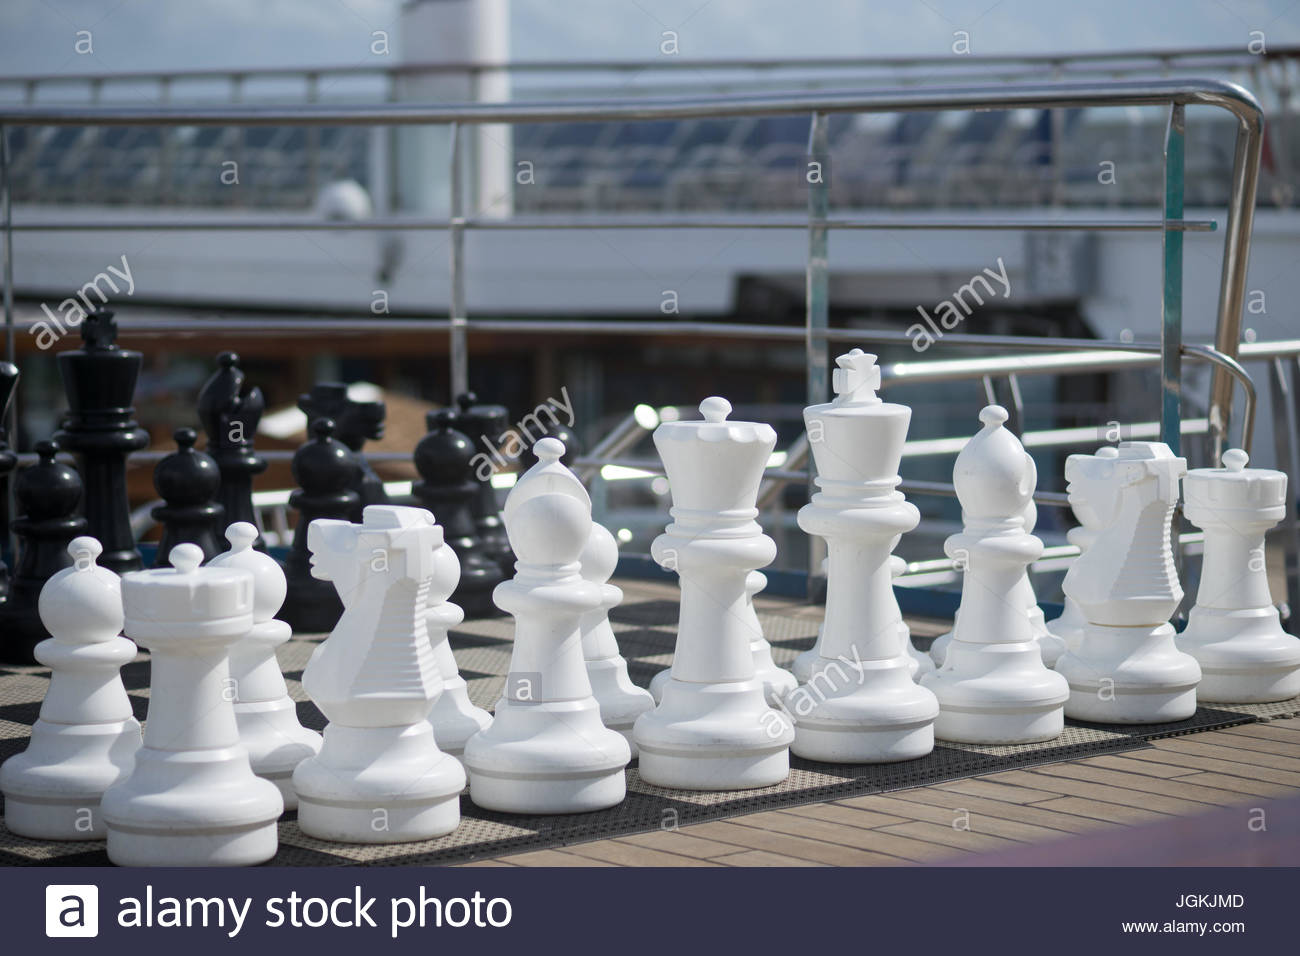 Big chessmen are available for passengers on a cruise ship in the caribbean to play - Stock Image